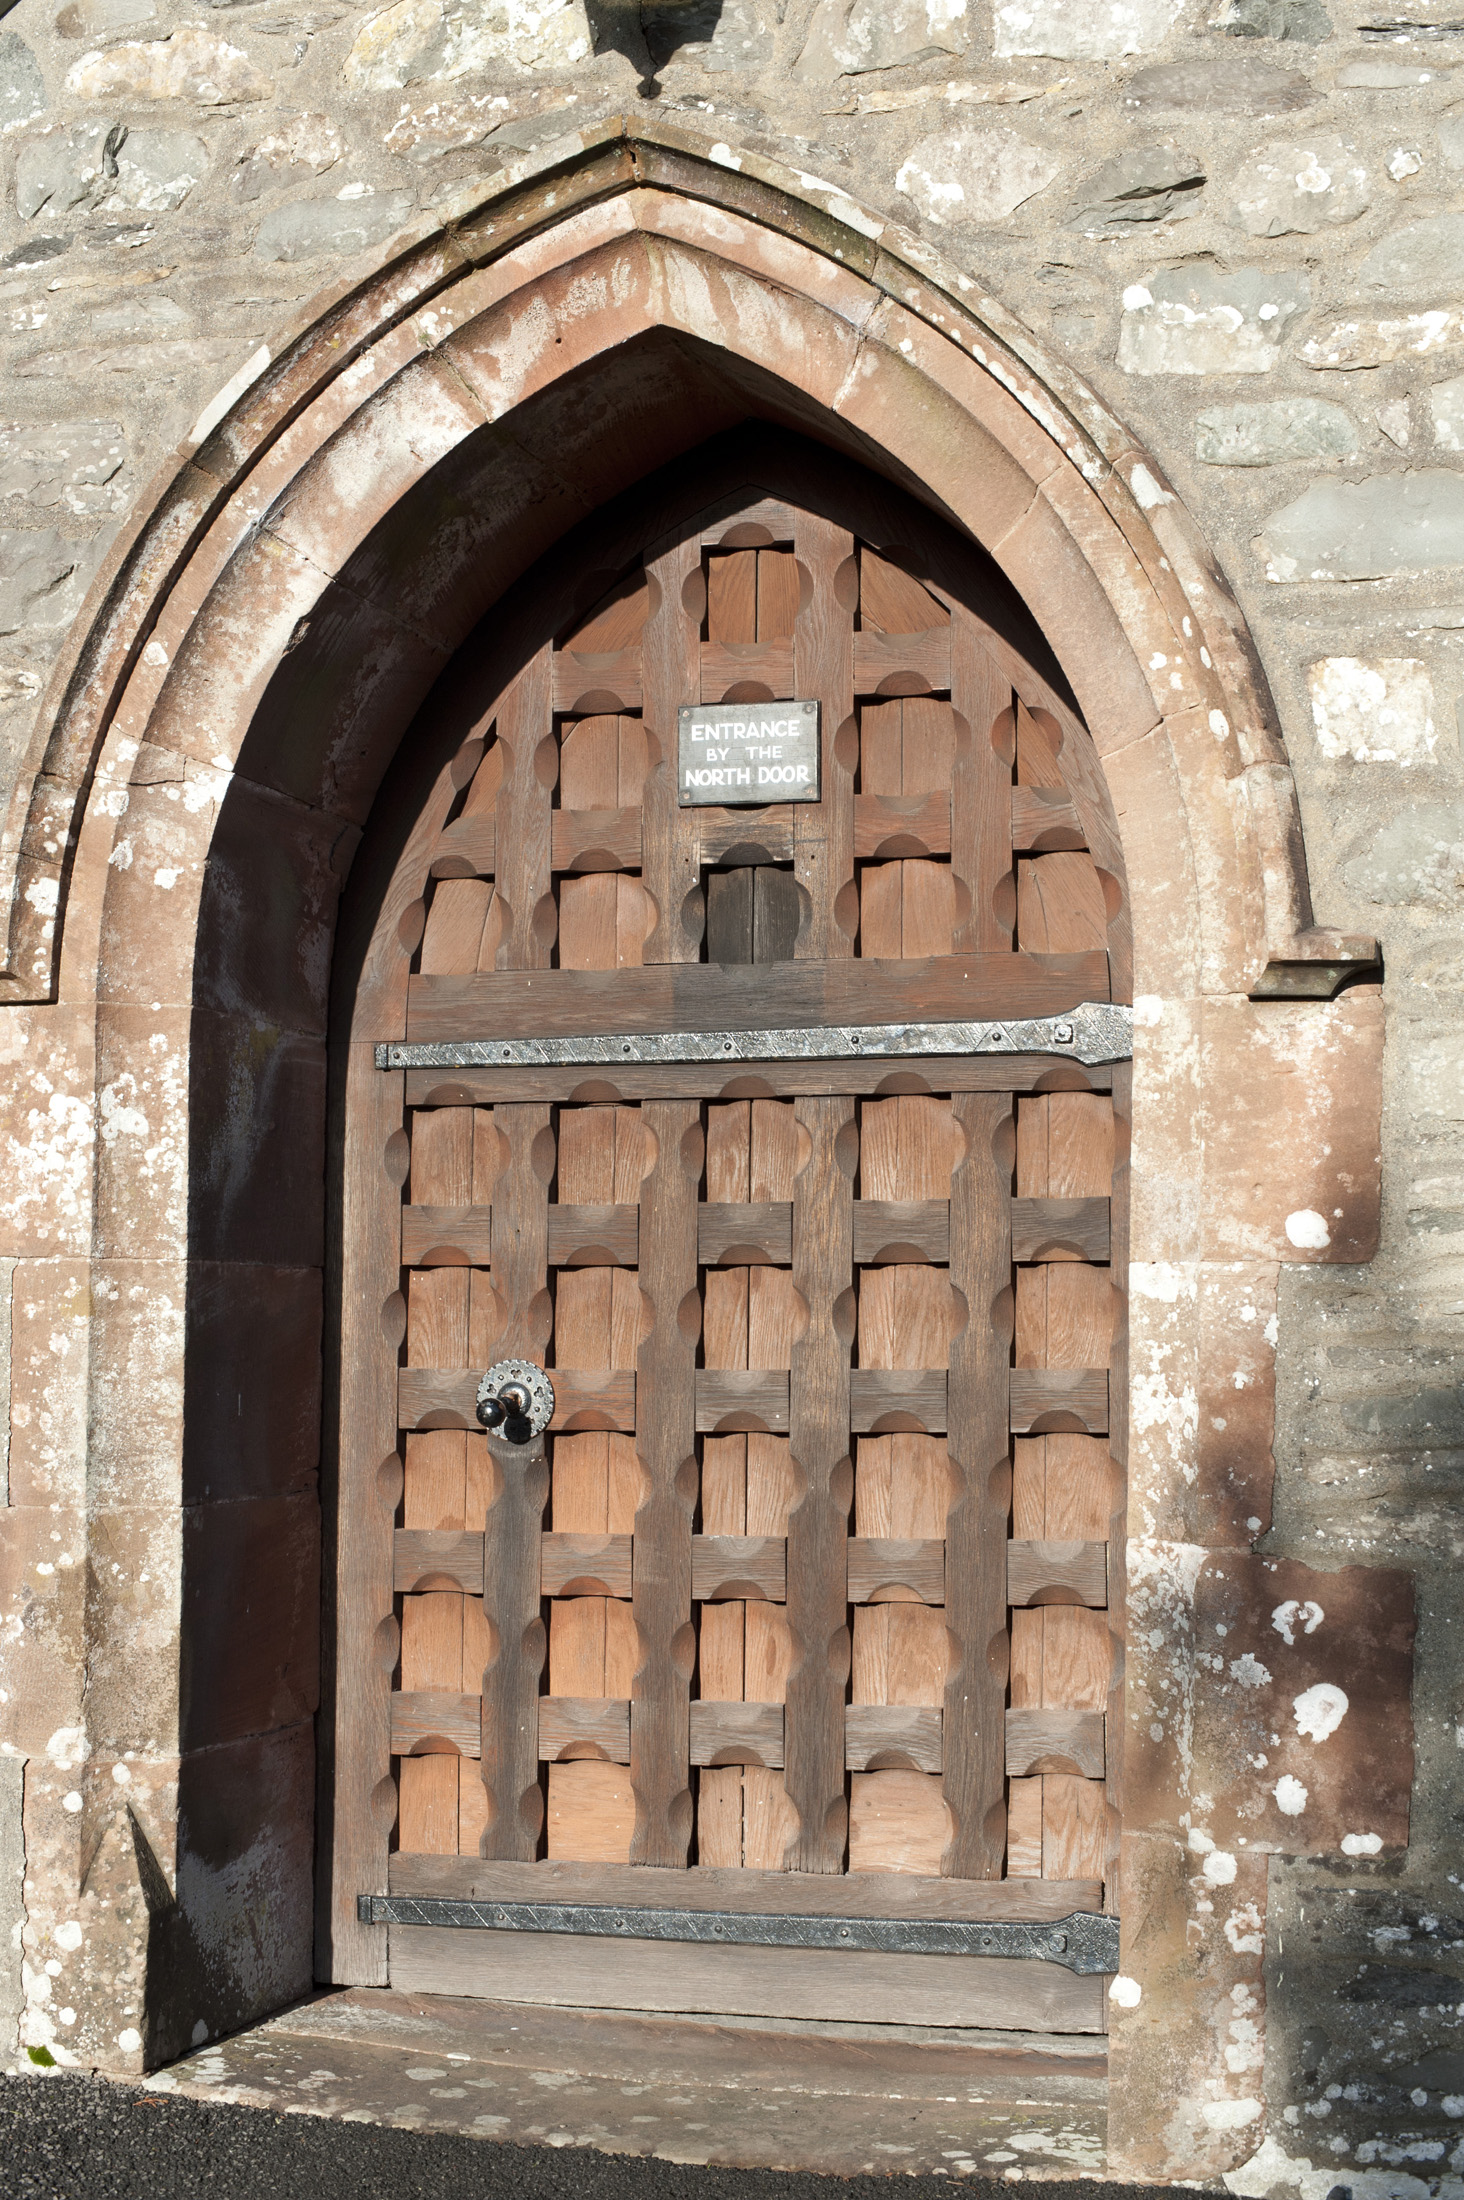 Gothic Berlin Free Stock Photo Of Arched Medieval Entrance To Hawkshead